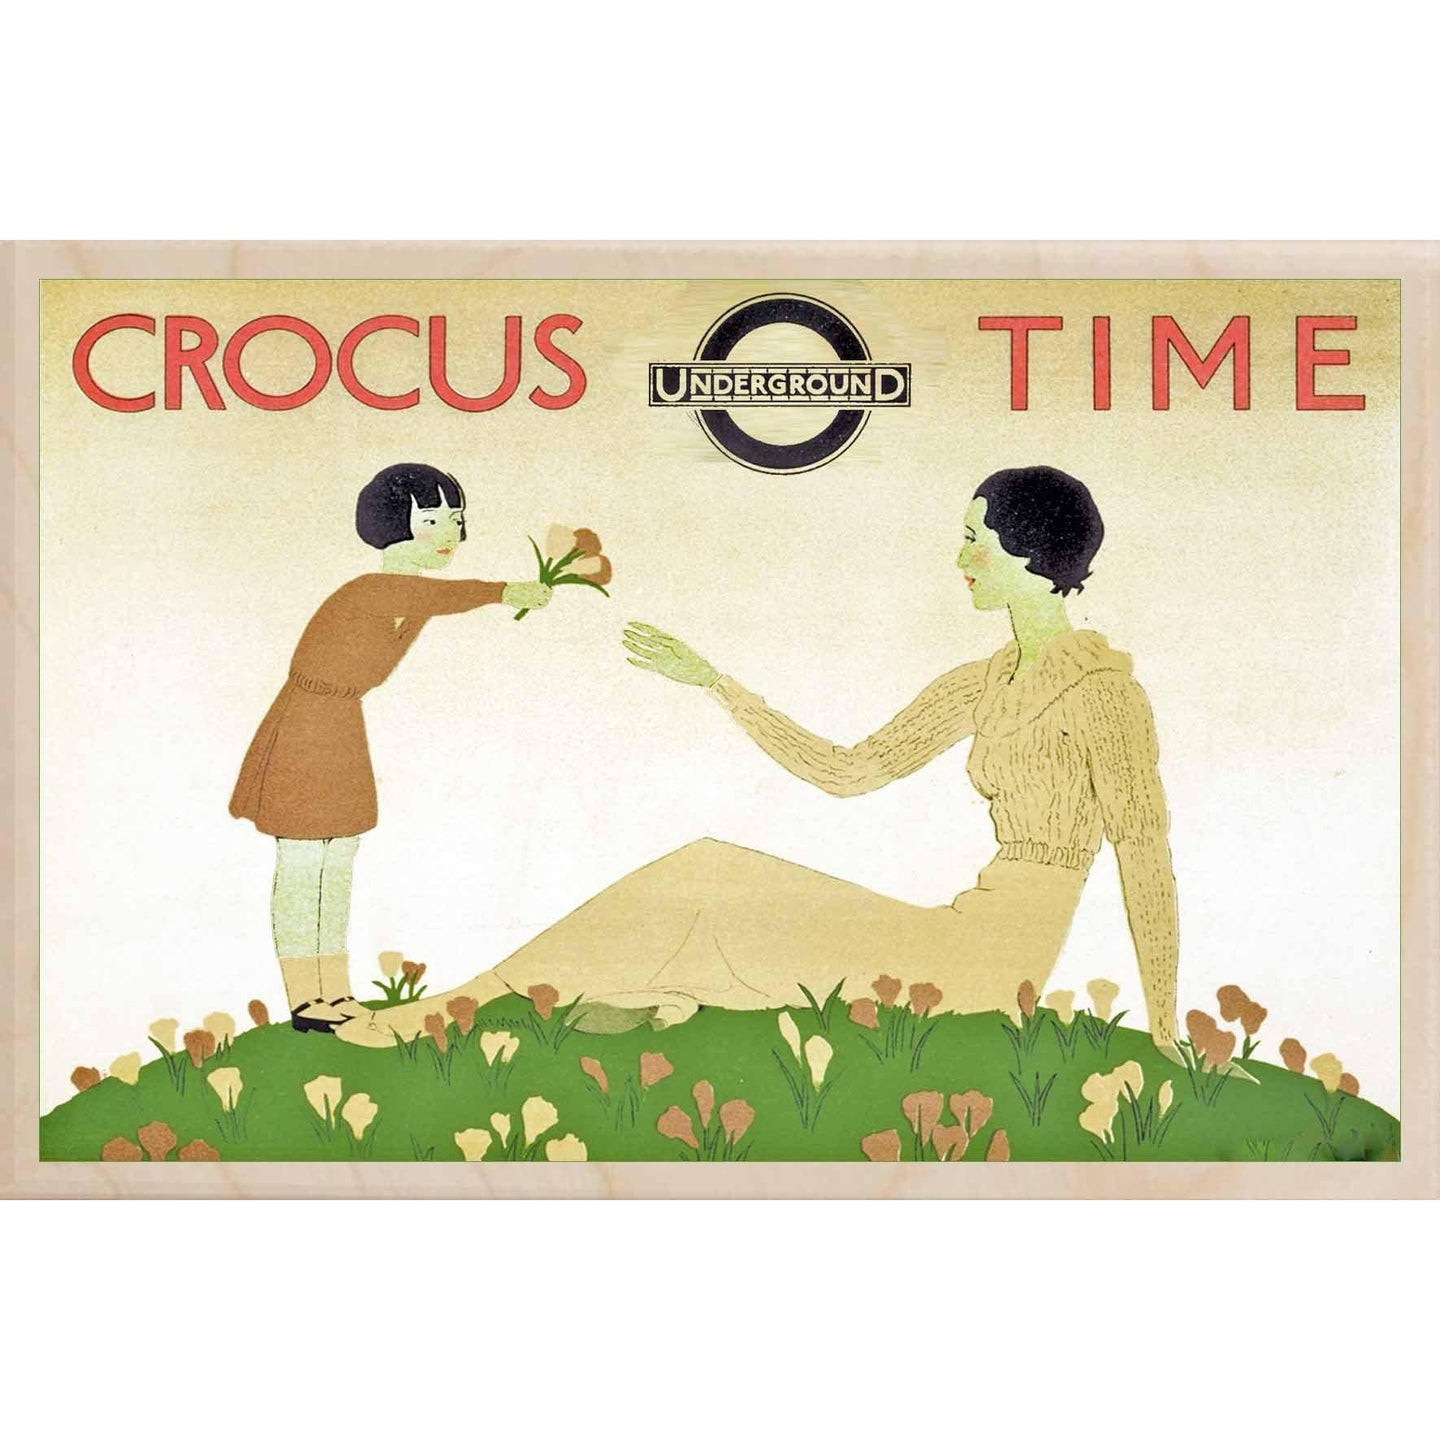 CROCUS TIME-[wooden_postcard]-[london_transport_museum]-[original_illustration]THE WOODEN POSTCARD COMPANY